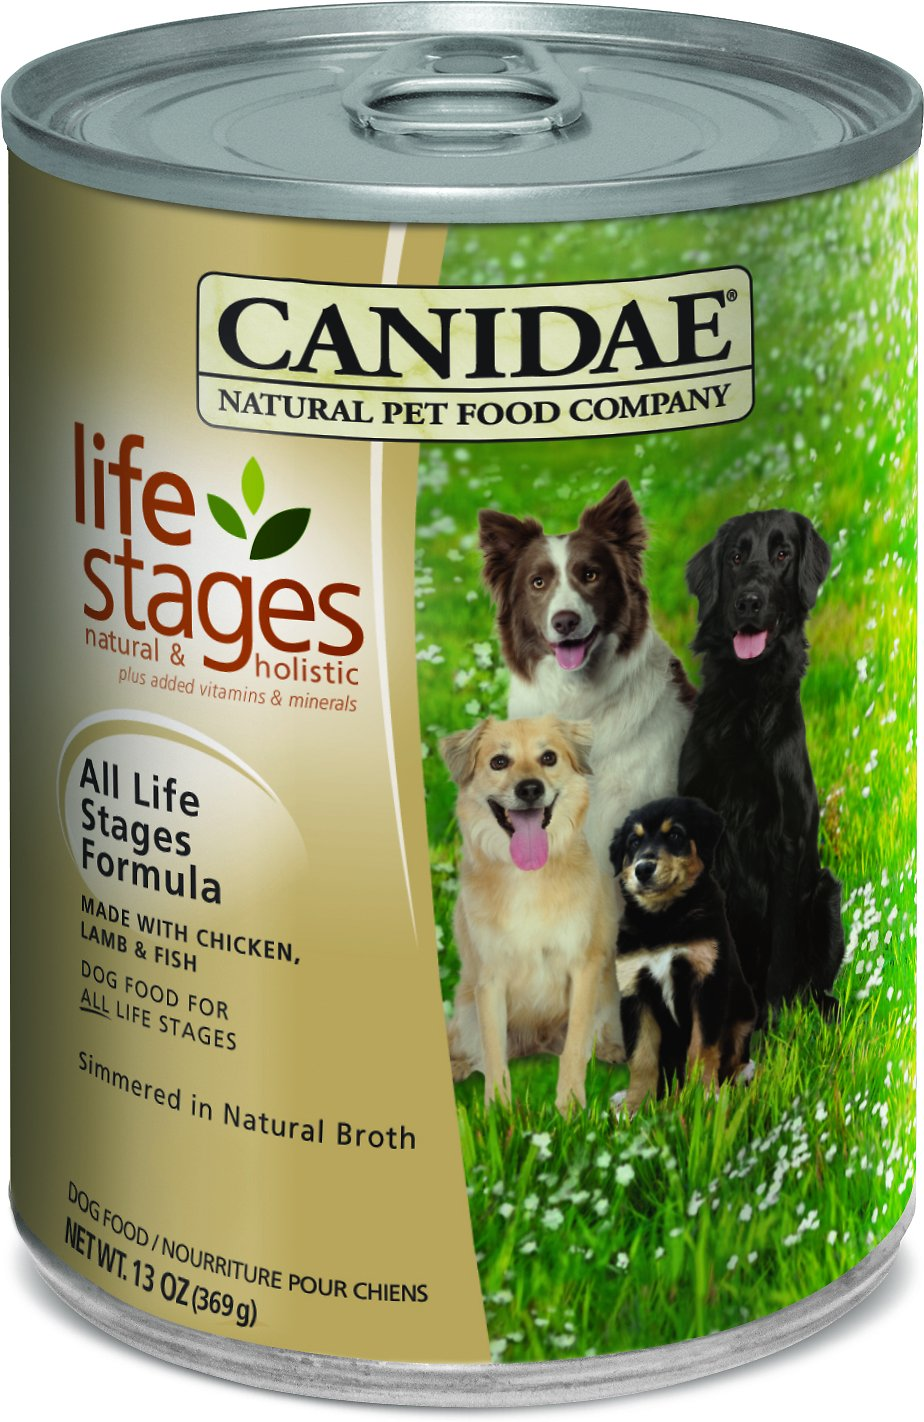 Canned Dog Food Reviews